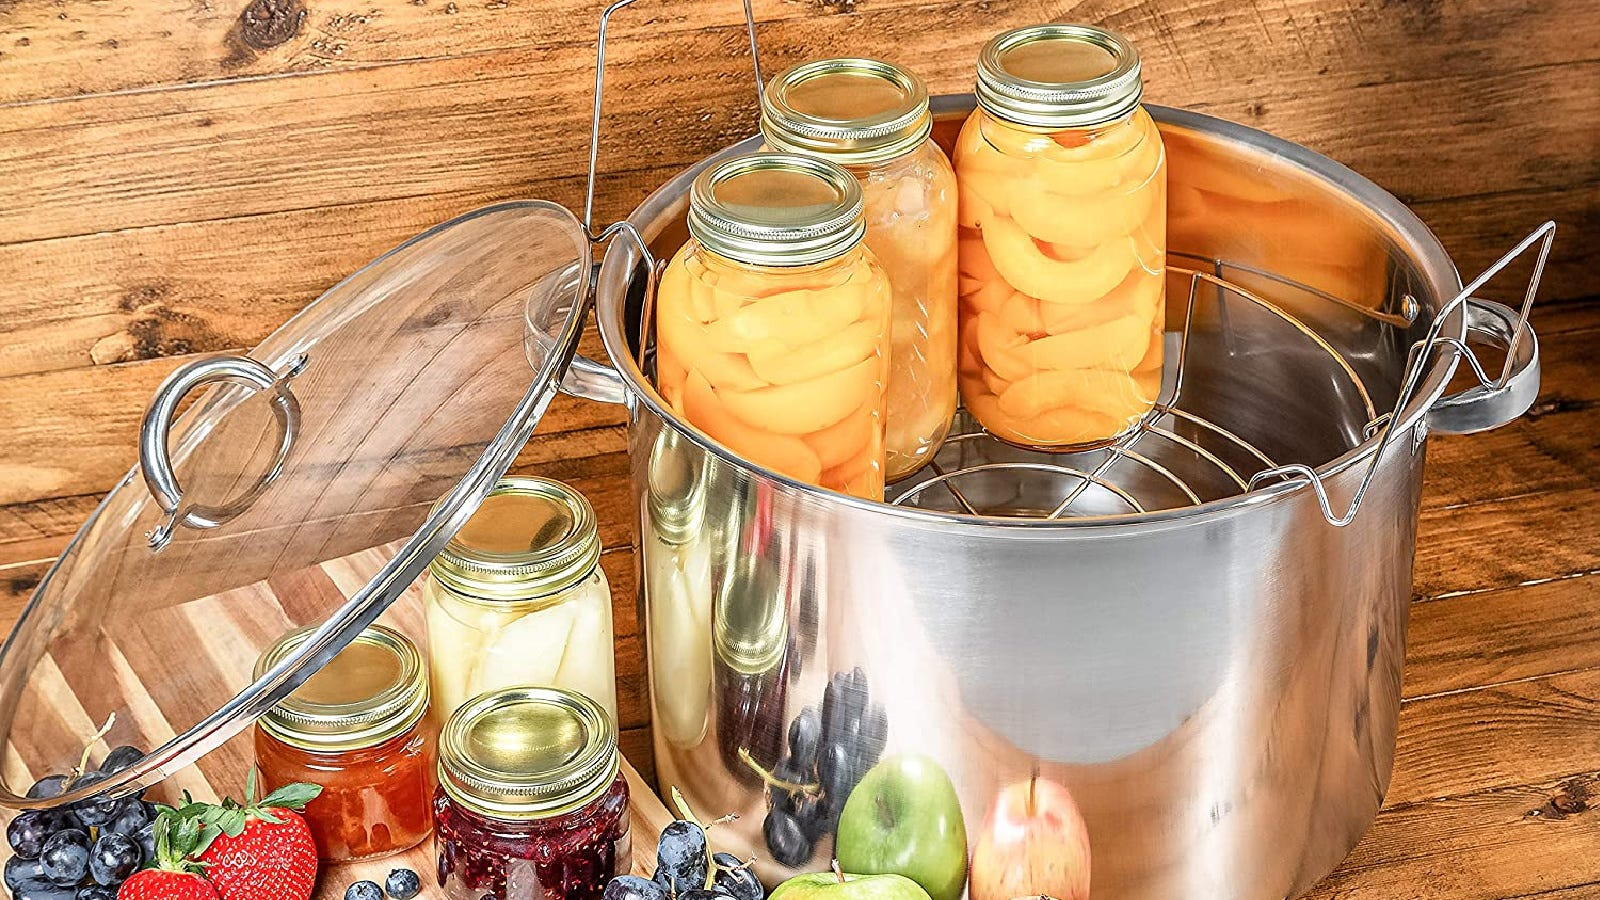 A McSunley water bath canner with jarred peaches inside with various other jarred fruits next to the canner.